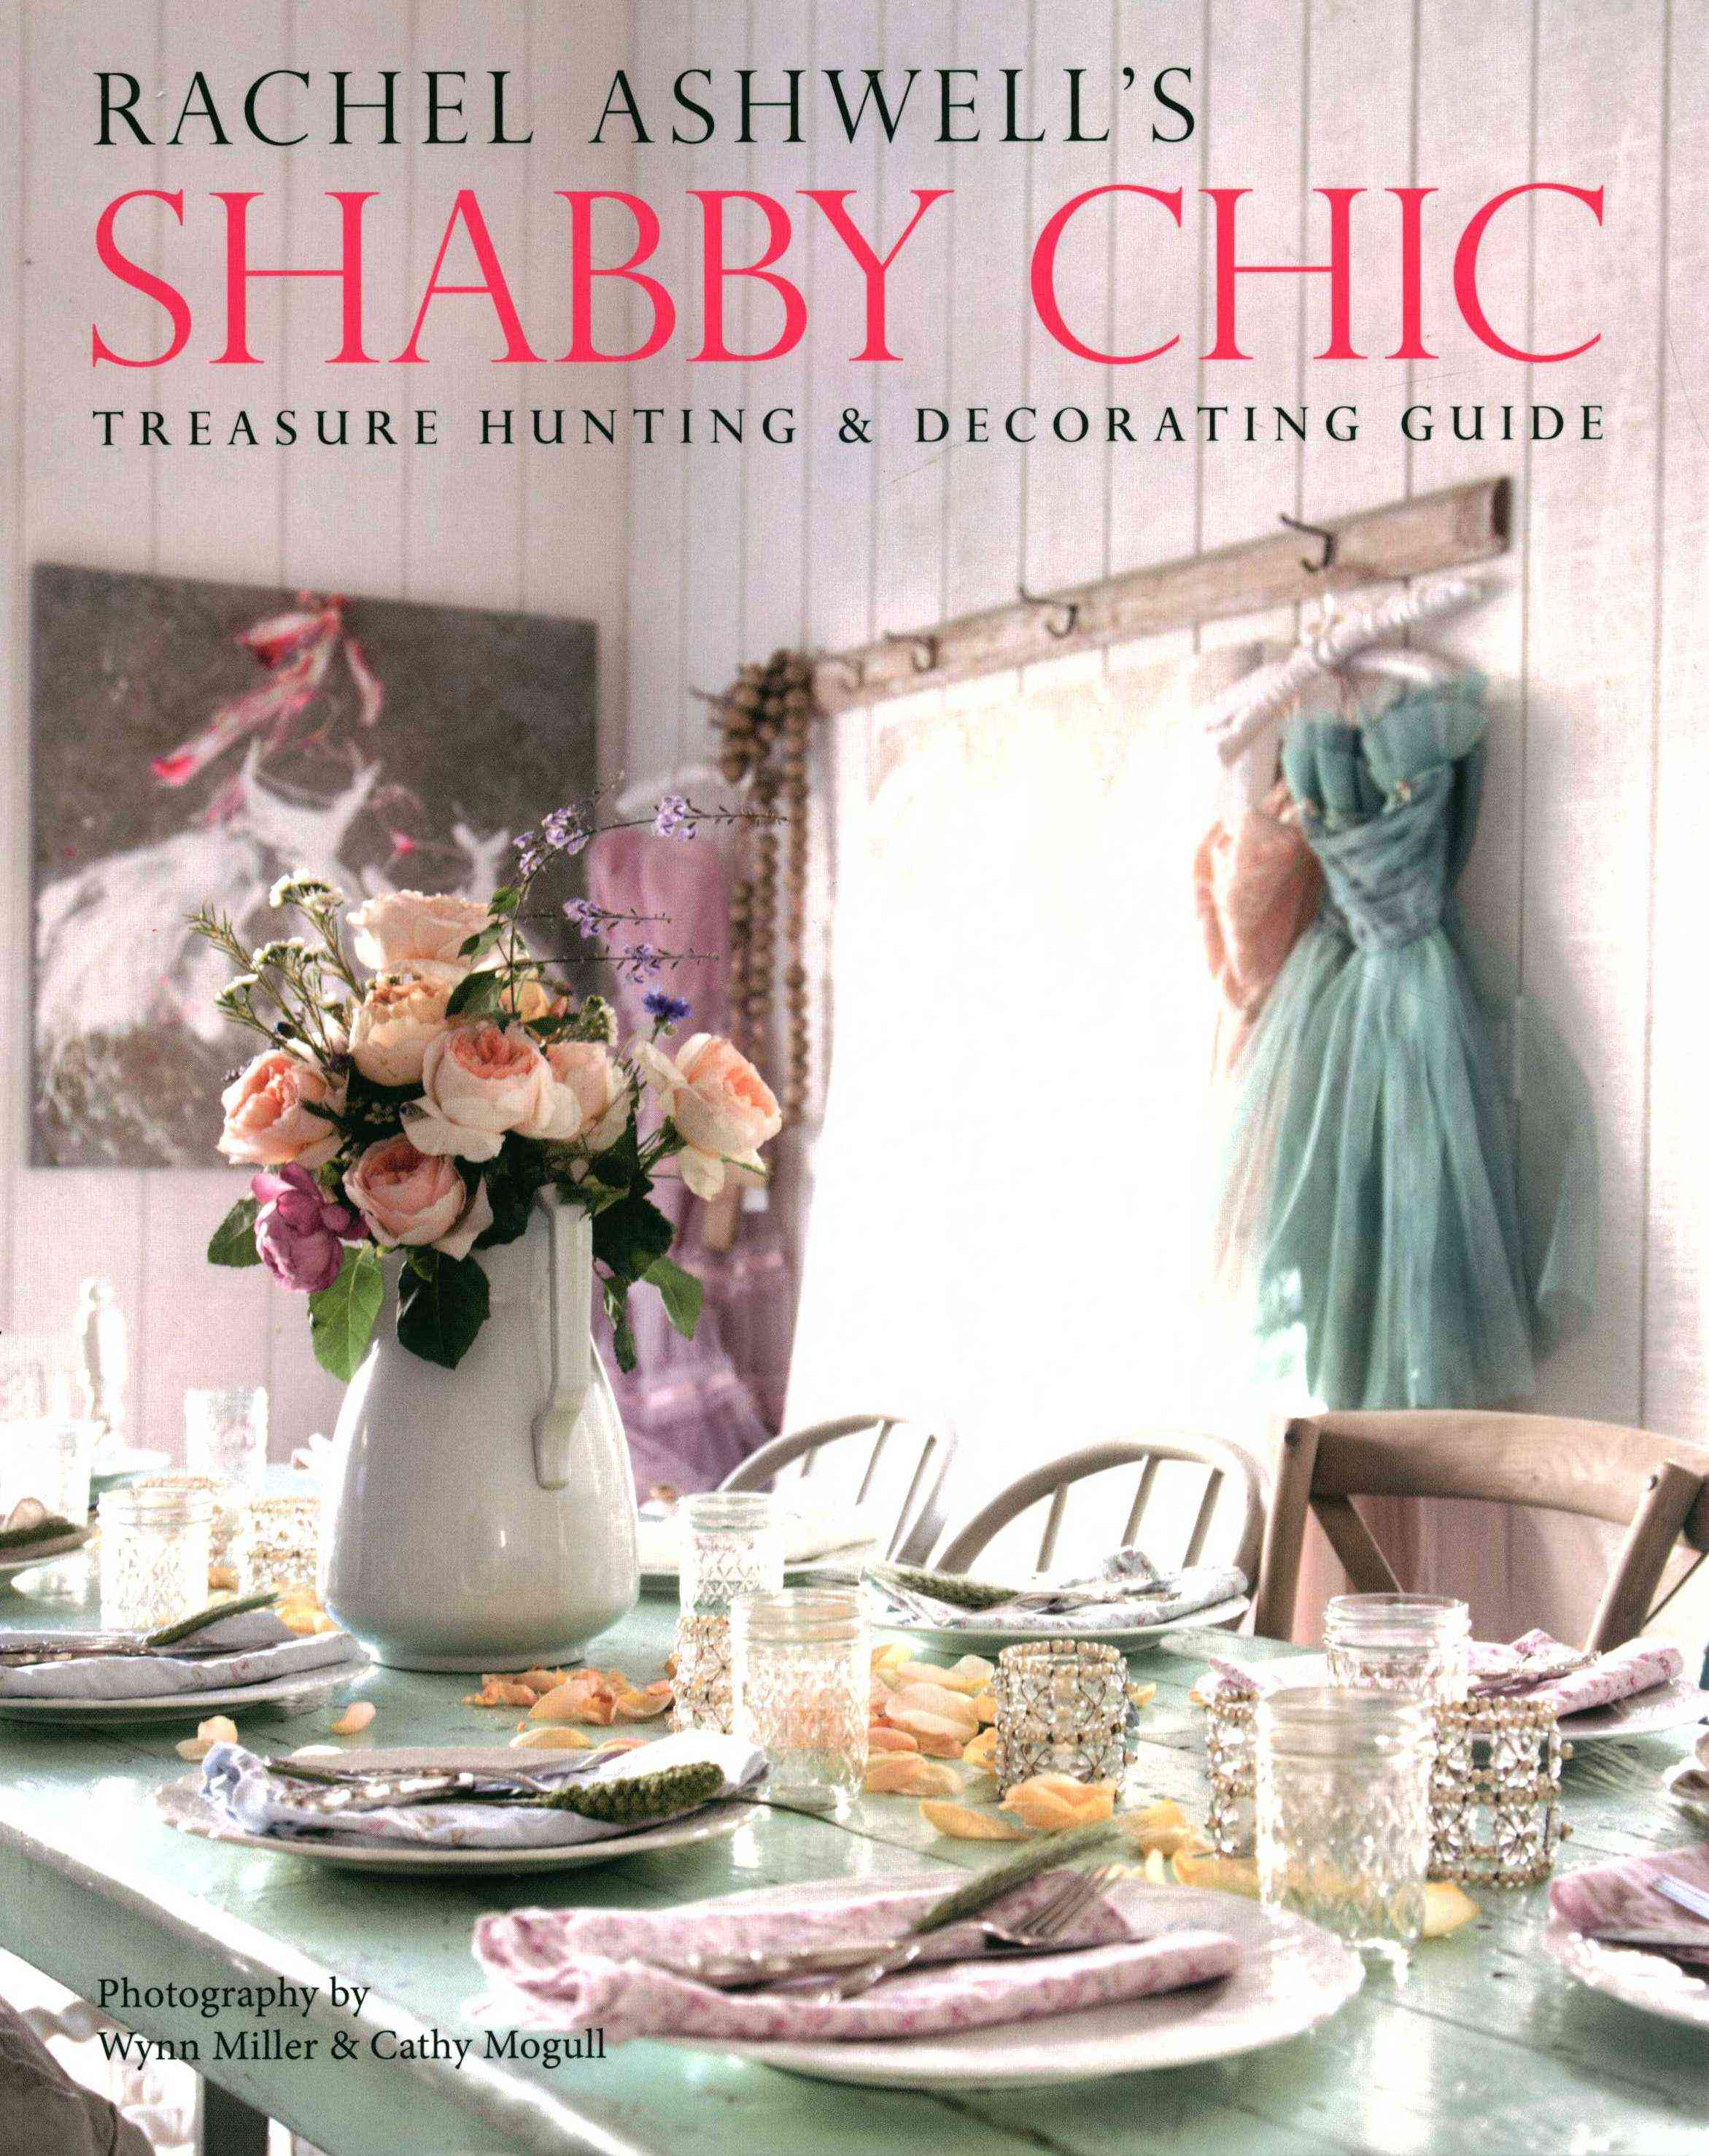 Rachel Ashwell's Shabby Chic Treasure Hunting and Decorating Guide By Ashwell, Rachel